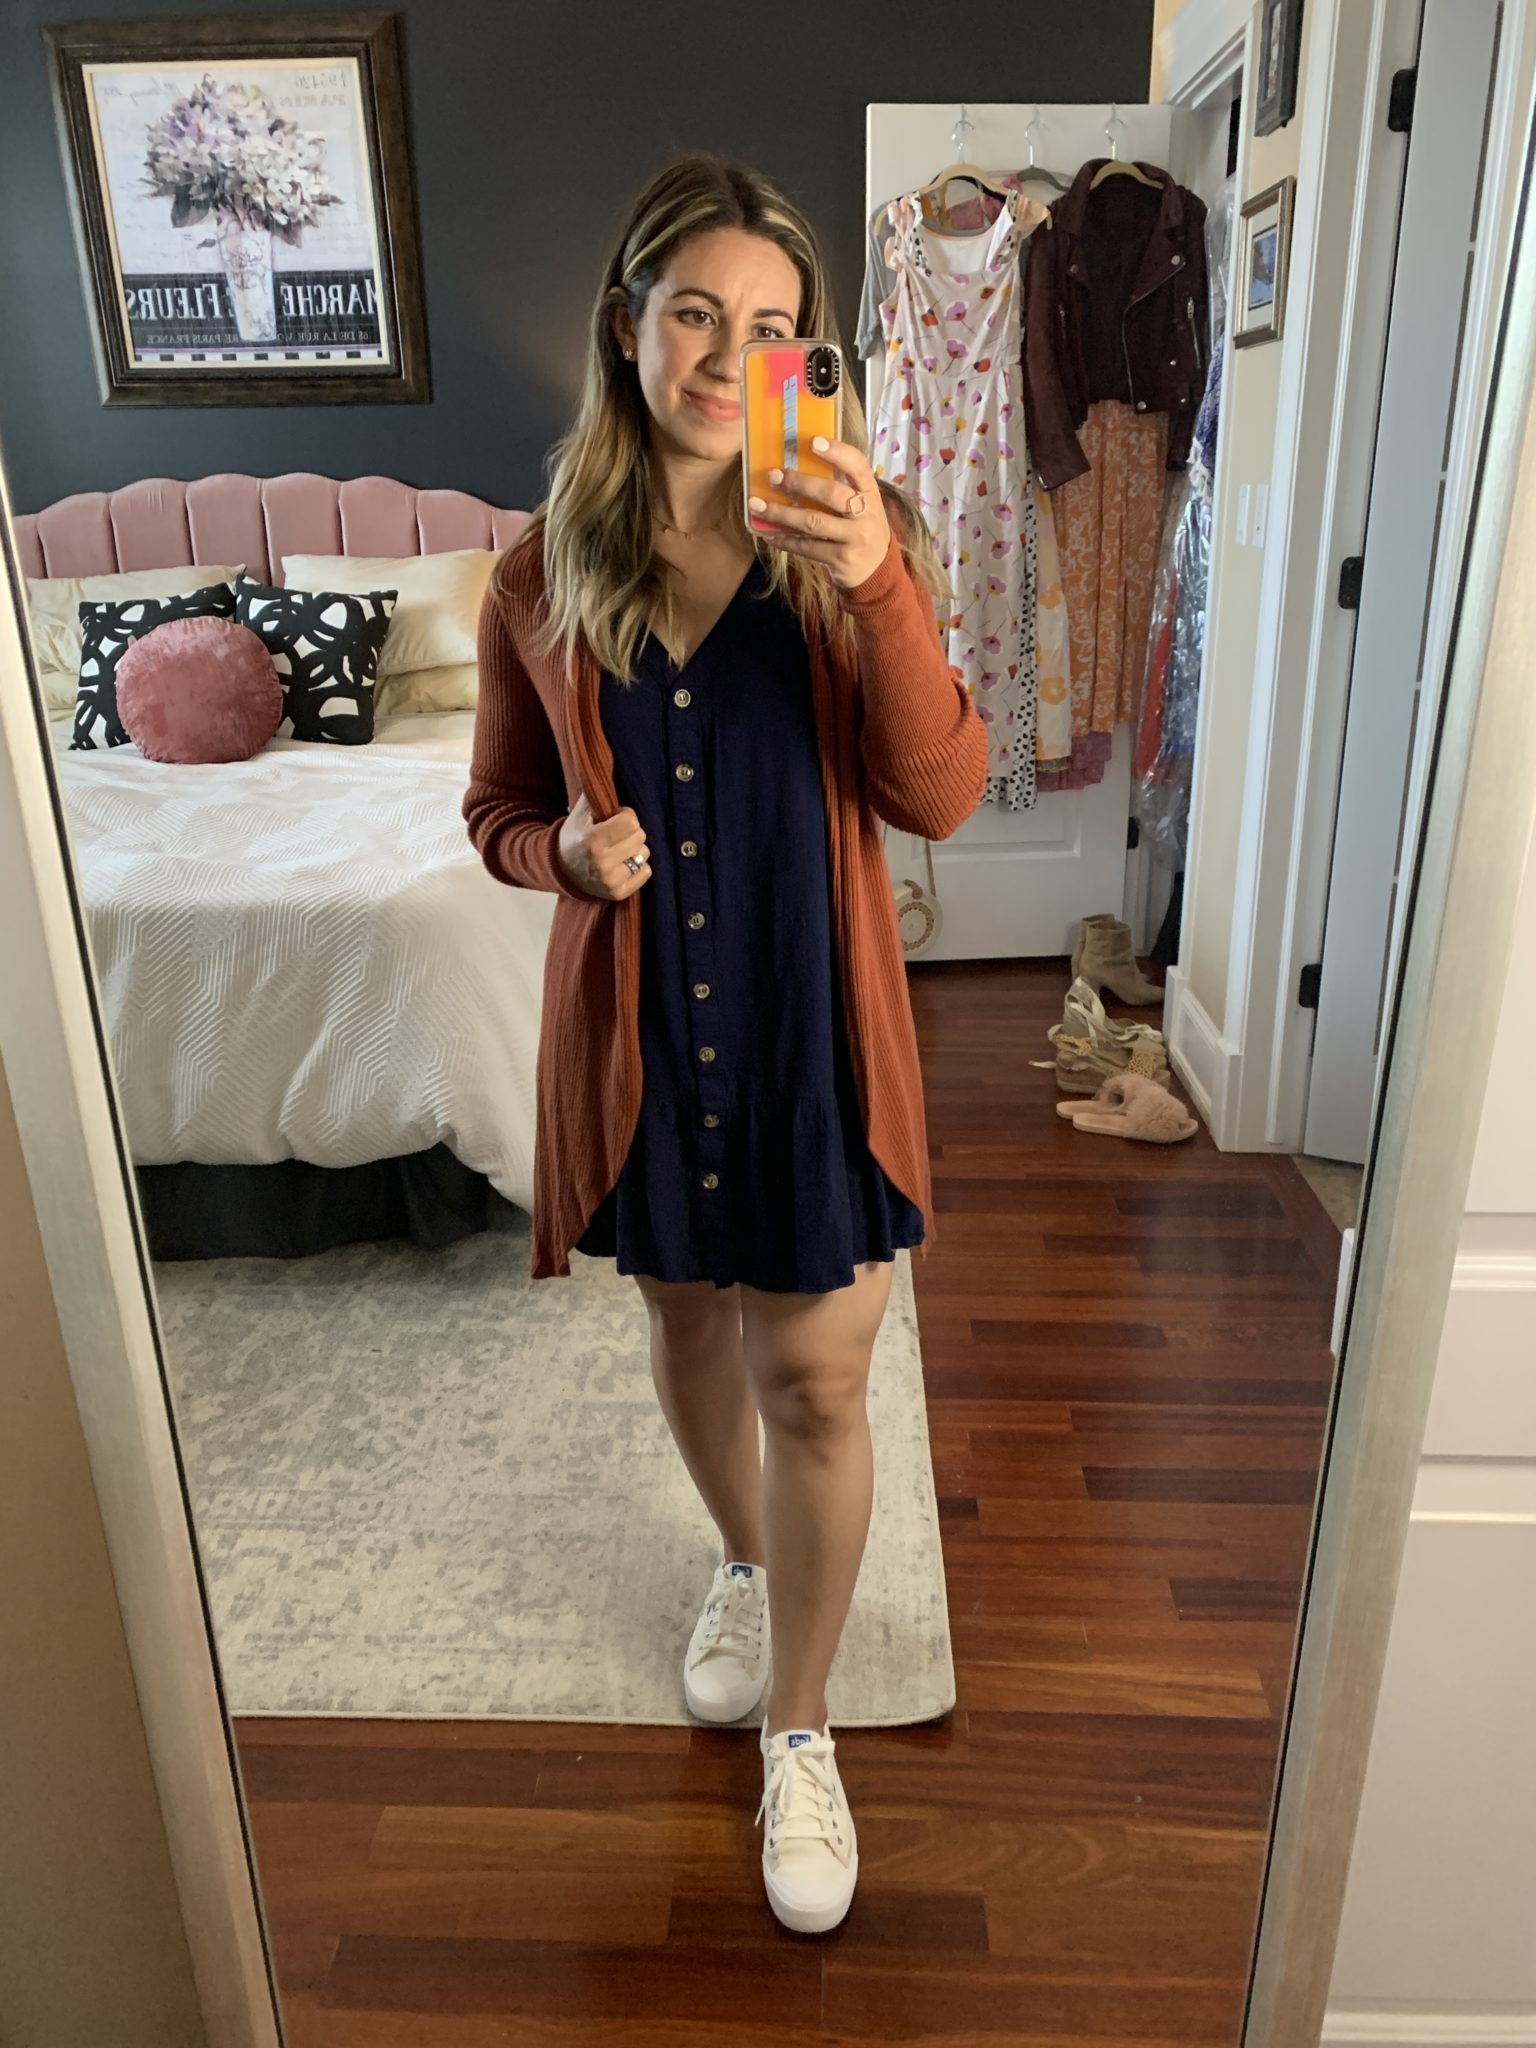 Sleeveless Dress by popular Chicago fashion blog, Glass of Glam: image of a woman standing in her bedroom and wearing a Amazon Imysty Womens Polka Dot V Neck Button Down Ruffles Loose Mini Short T-Shirt Dress, Cozy Long Cardigan LEITH, Zappos Keds Crew Kick 75 Canvas